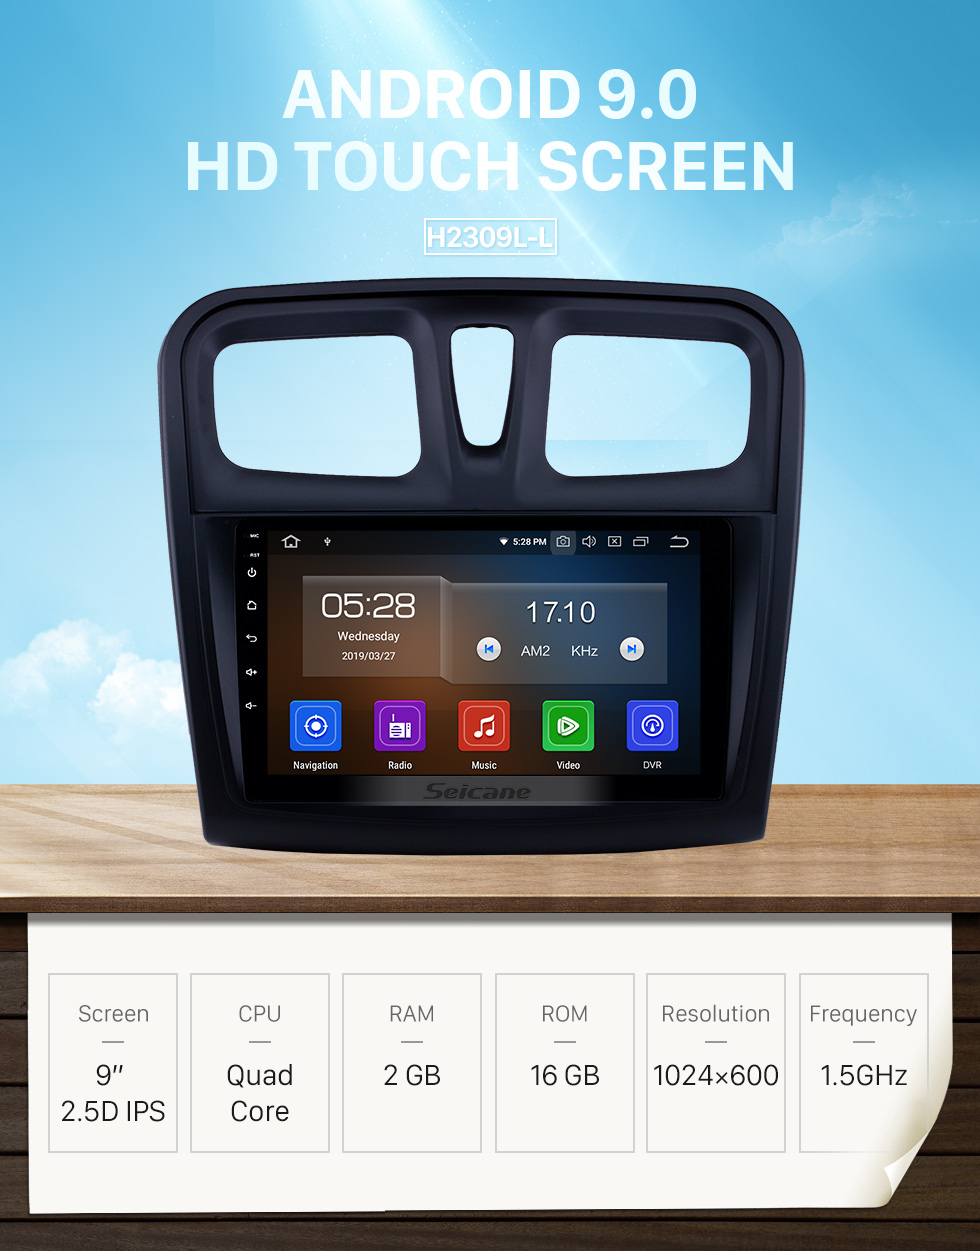 Seicane HD Touchscreen 2012-2017 Renault Sandero Android 9.0 9 inch GPS Navigation Radio Bluetooth Carplay support DAB+ OBD2